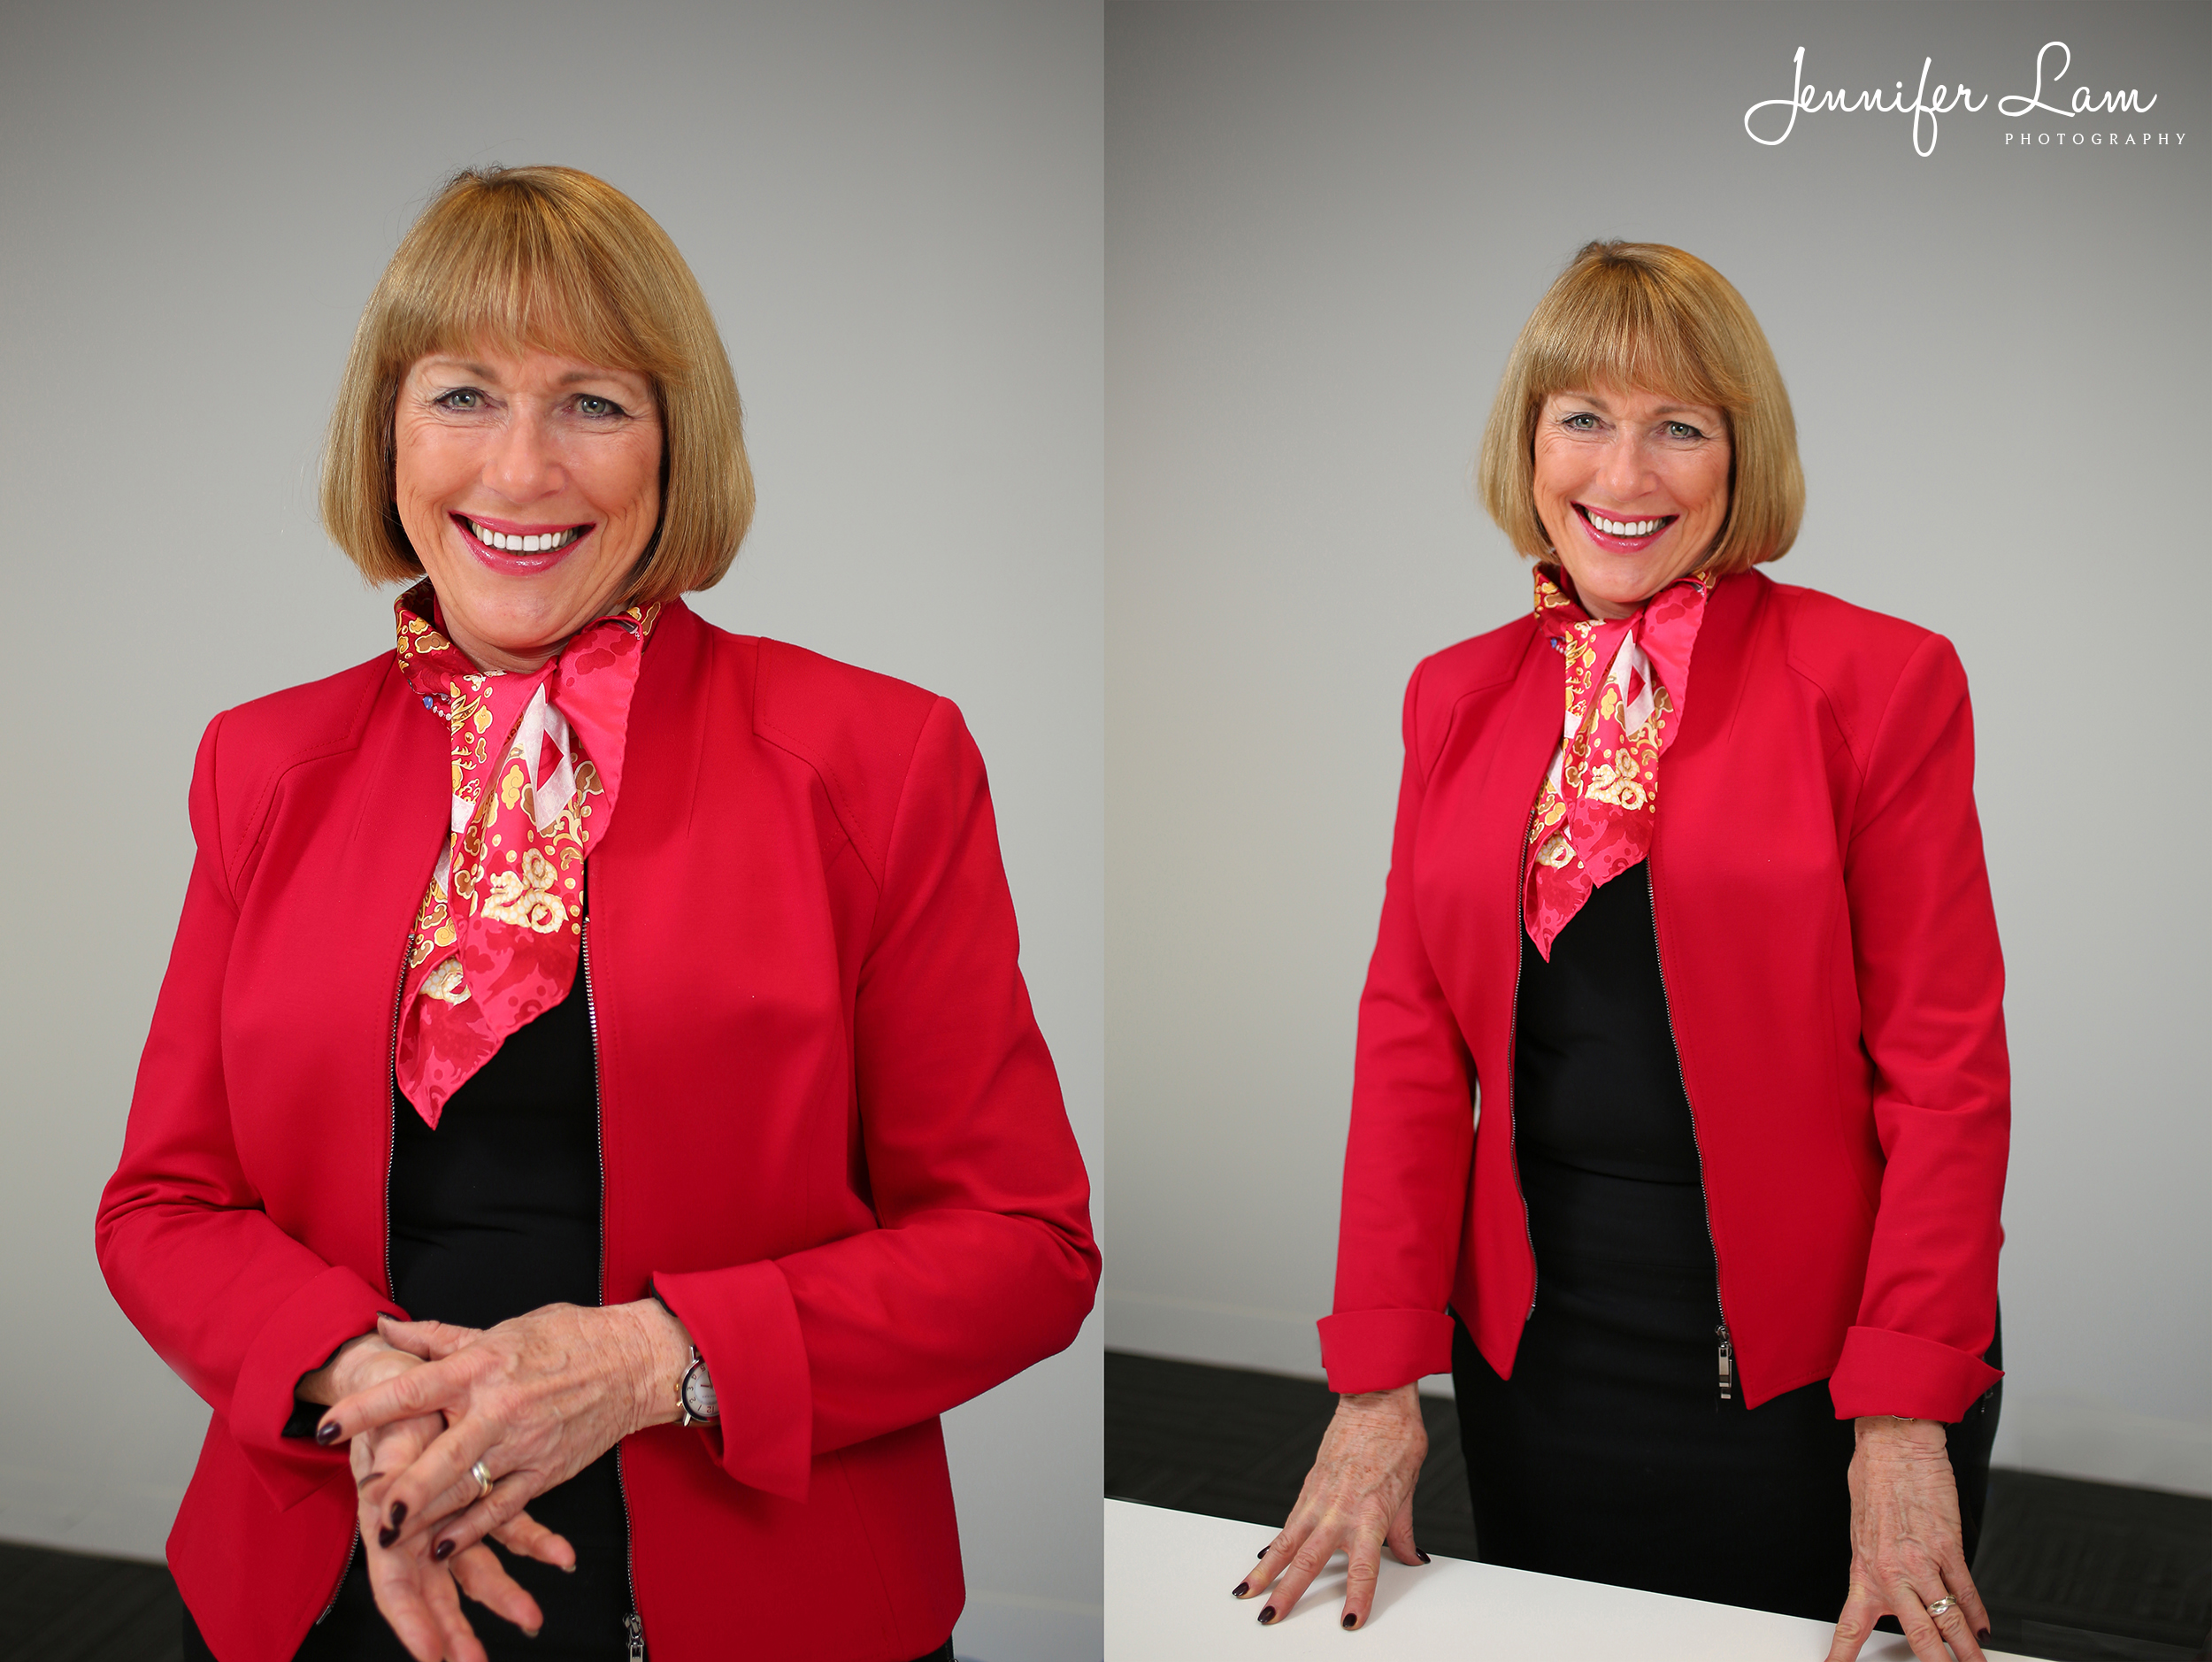 Gateway Credit Union (Corporate Portraits) By Jennifer Lam Photography (11).JPG